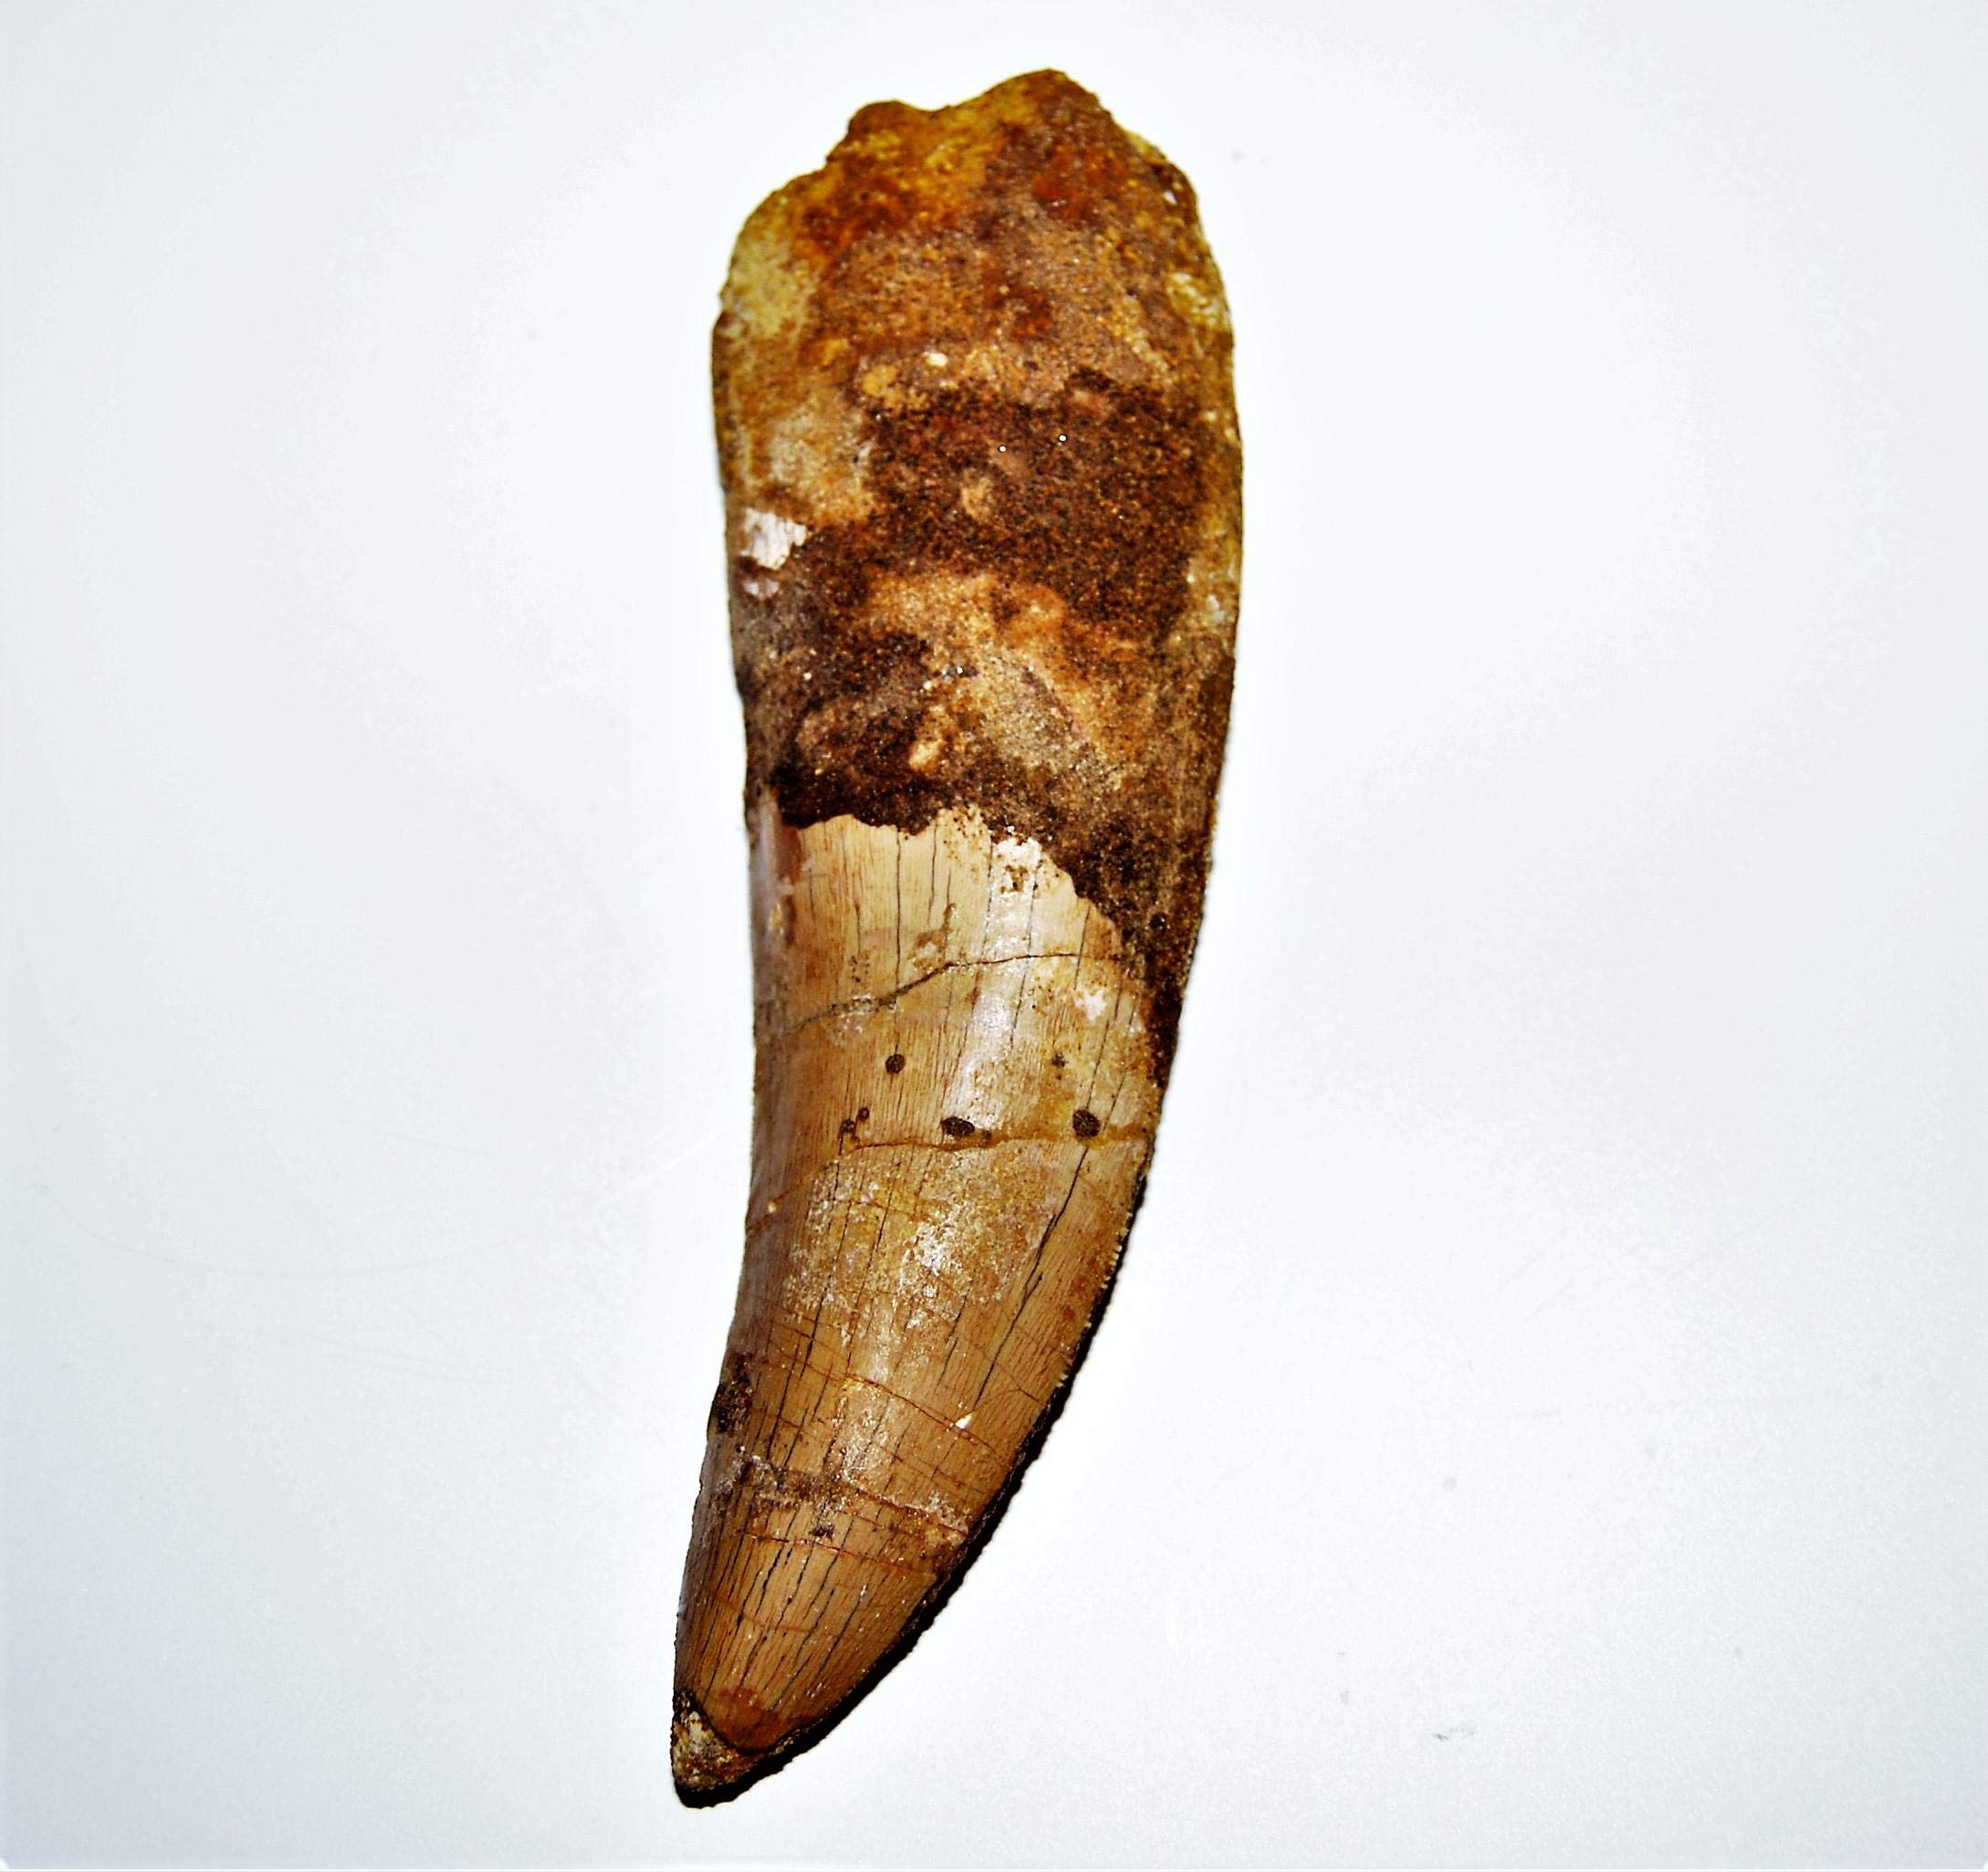 Carcharodontosaurus Dinosaur Tooth 5.012'' Fossil African T-Rex XLDB #14158 23o by Fossils, Meteorites, & More (Image #2)